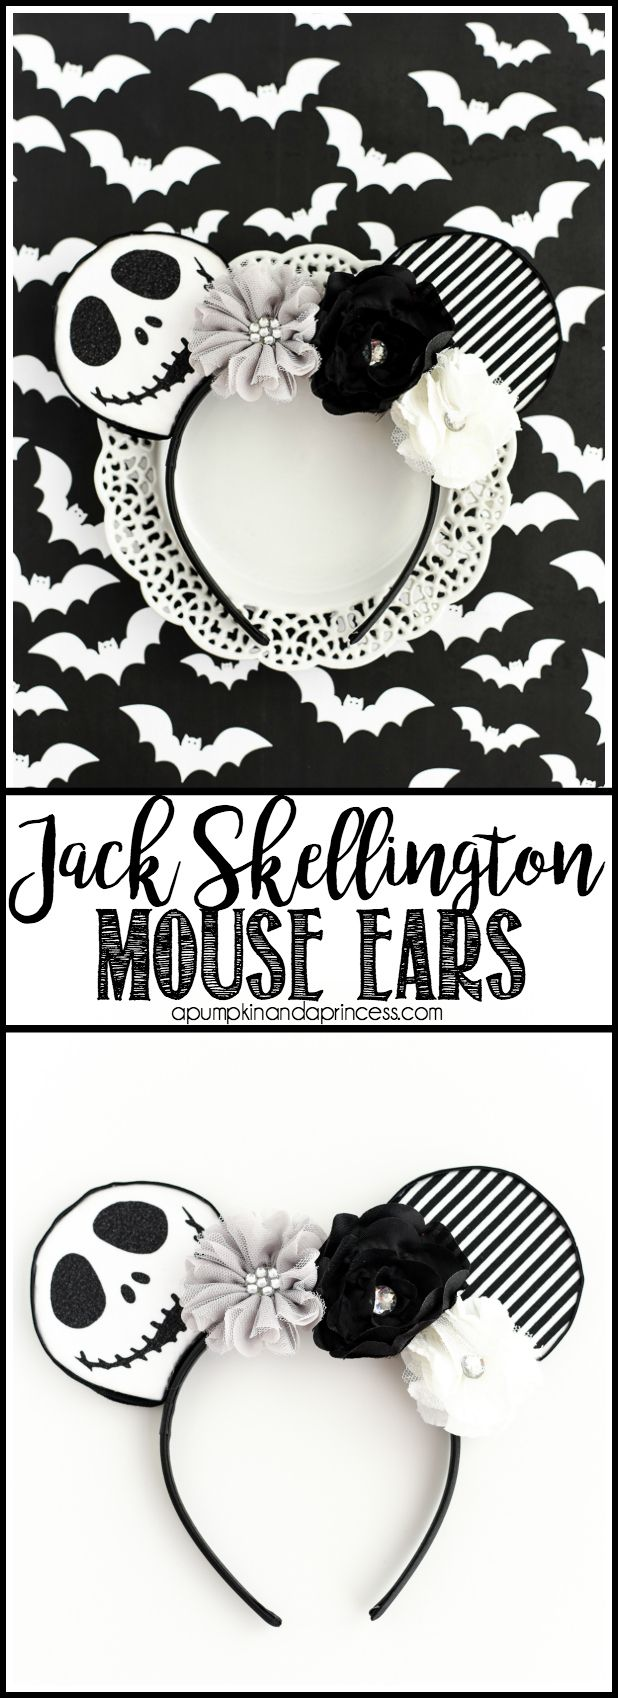 DIY No-Sew Jack Skellington Mouse Ears – easy tutorial and template to make your own mouse ears!